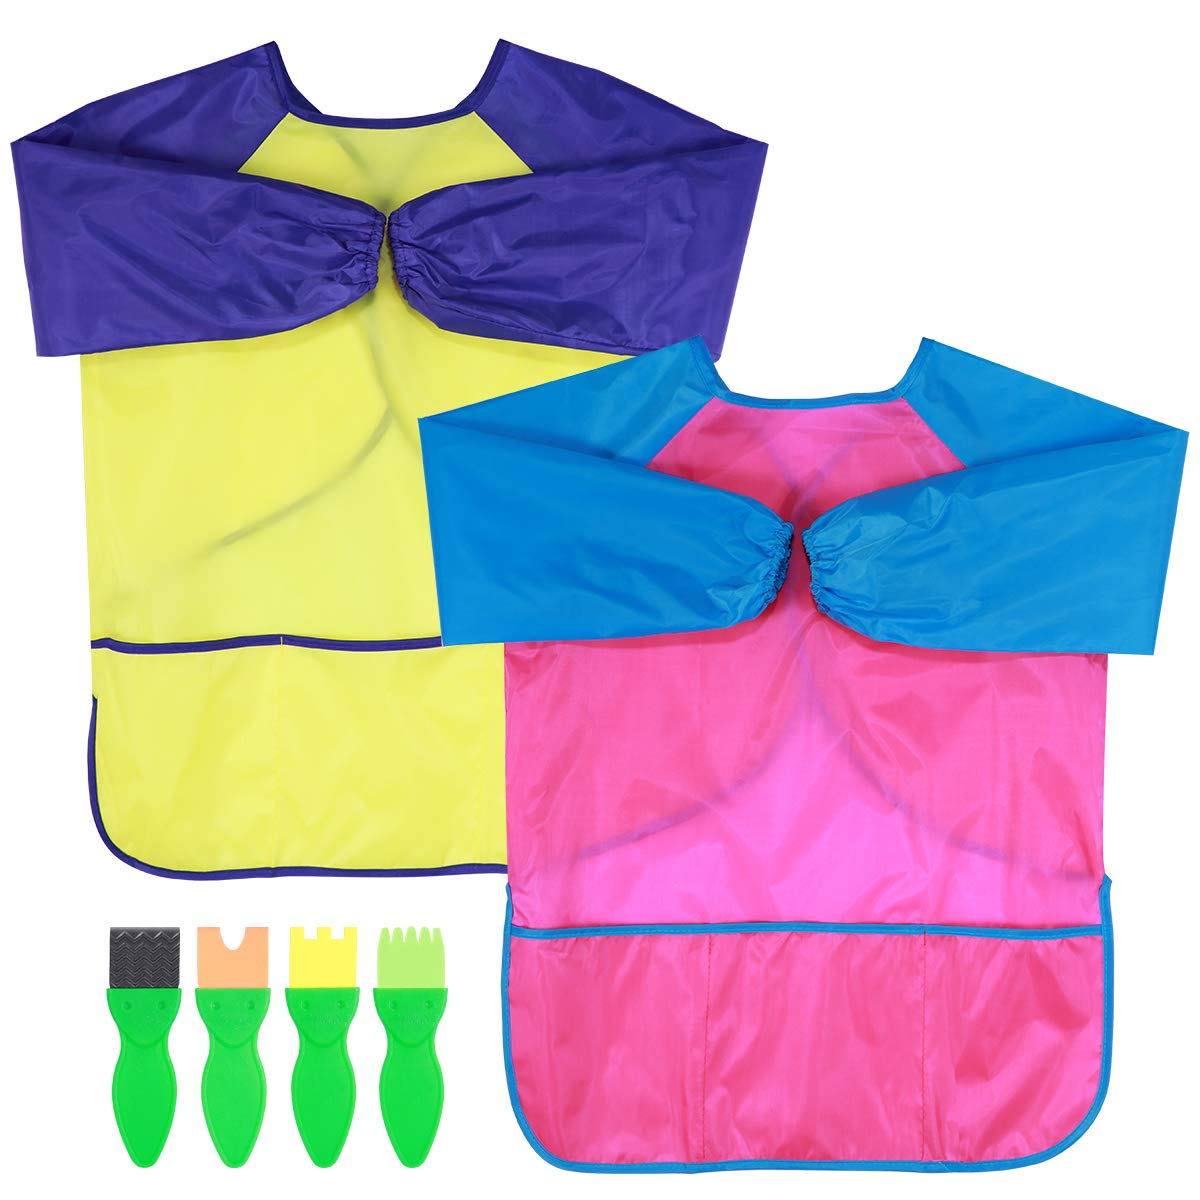 Rosy Red + Yellow Toyvian Kids Art Aprons 2 Pack Children Smocks Waterproof Artist Painting Long Sleeve with with 3 Roomy Pockets for Age 2-6 Years Bonus 4PCS Painting Tools